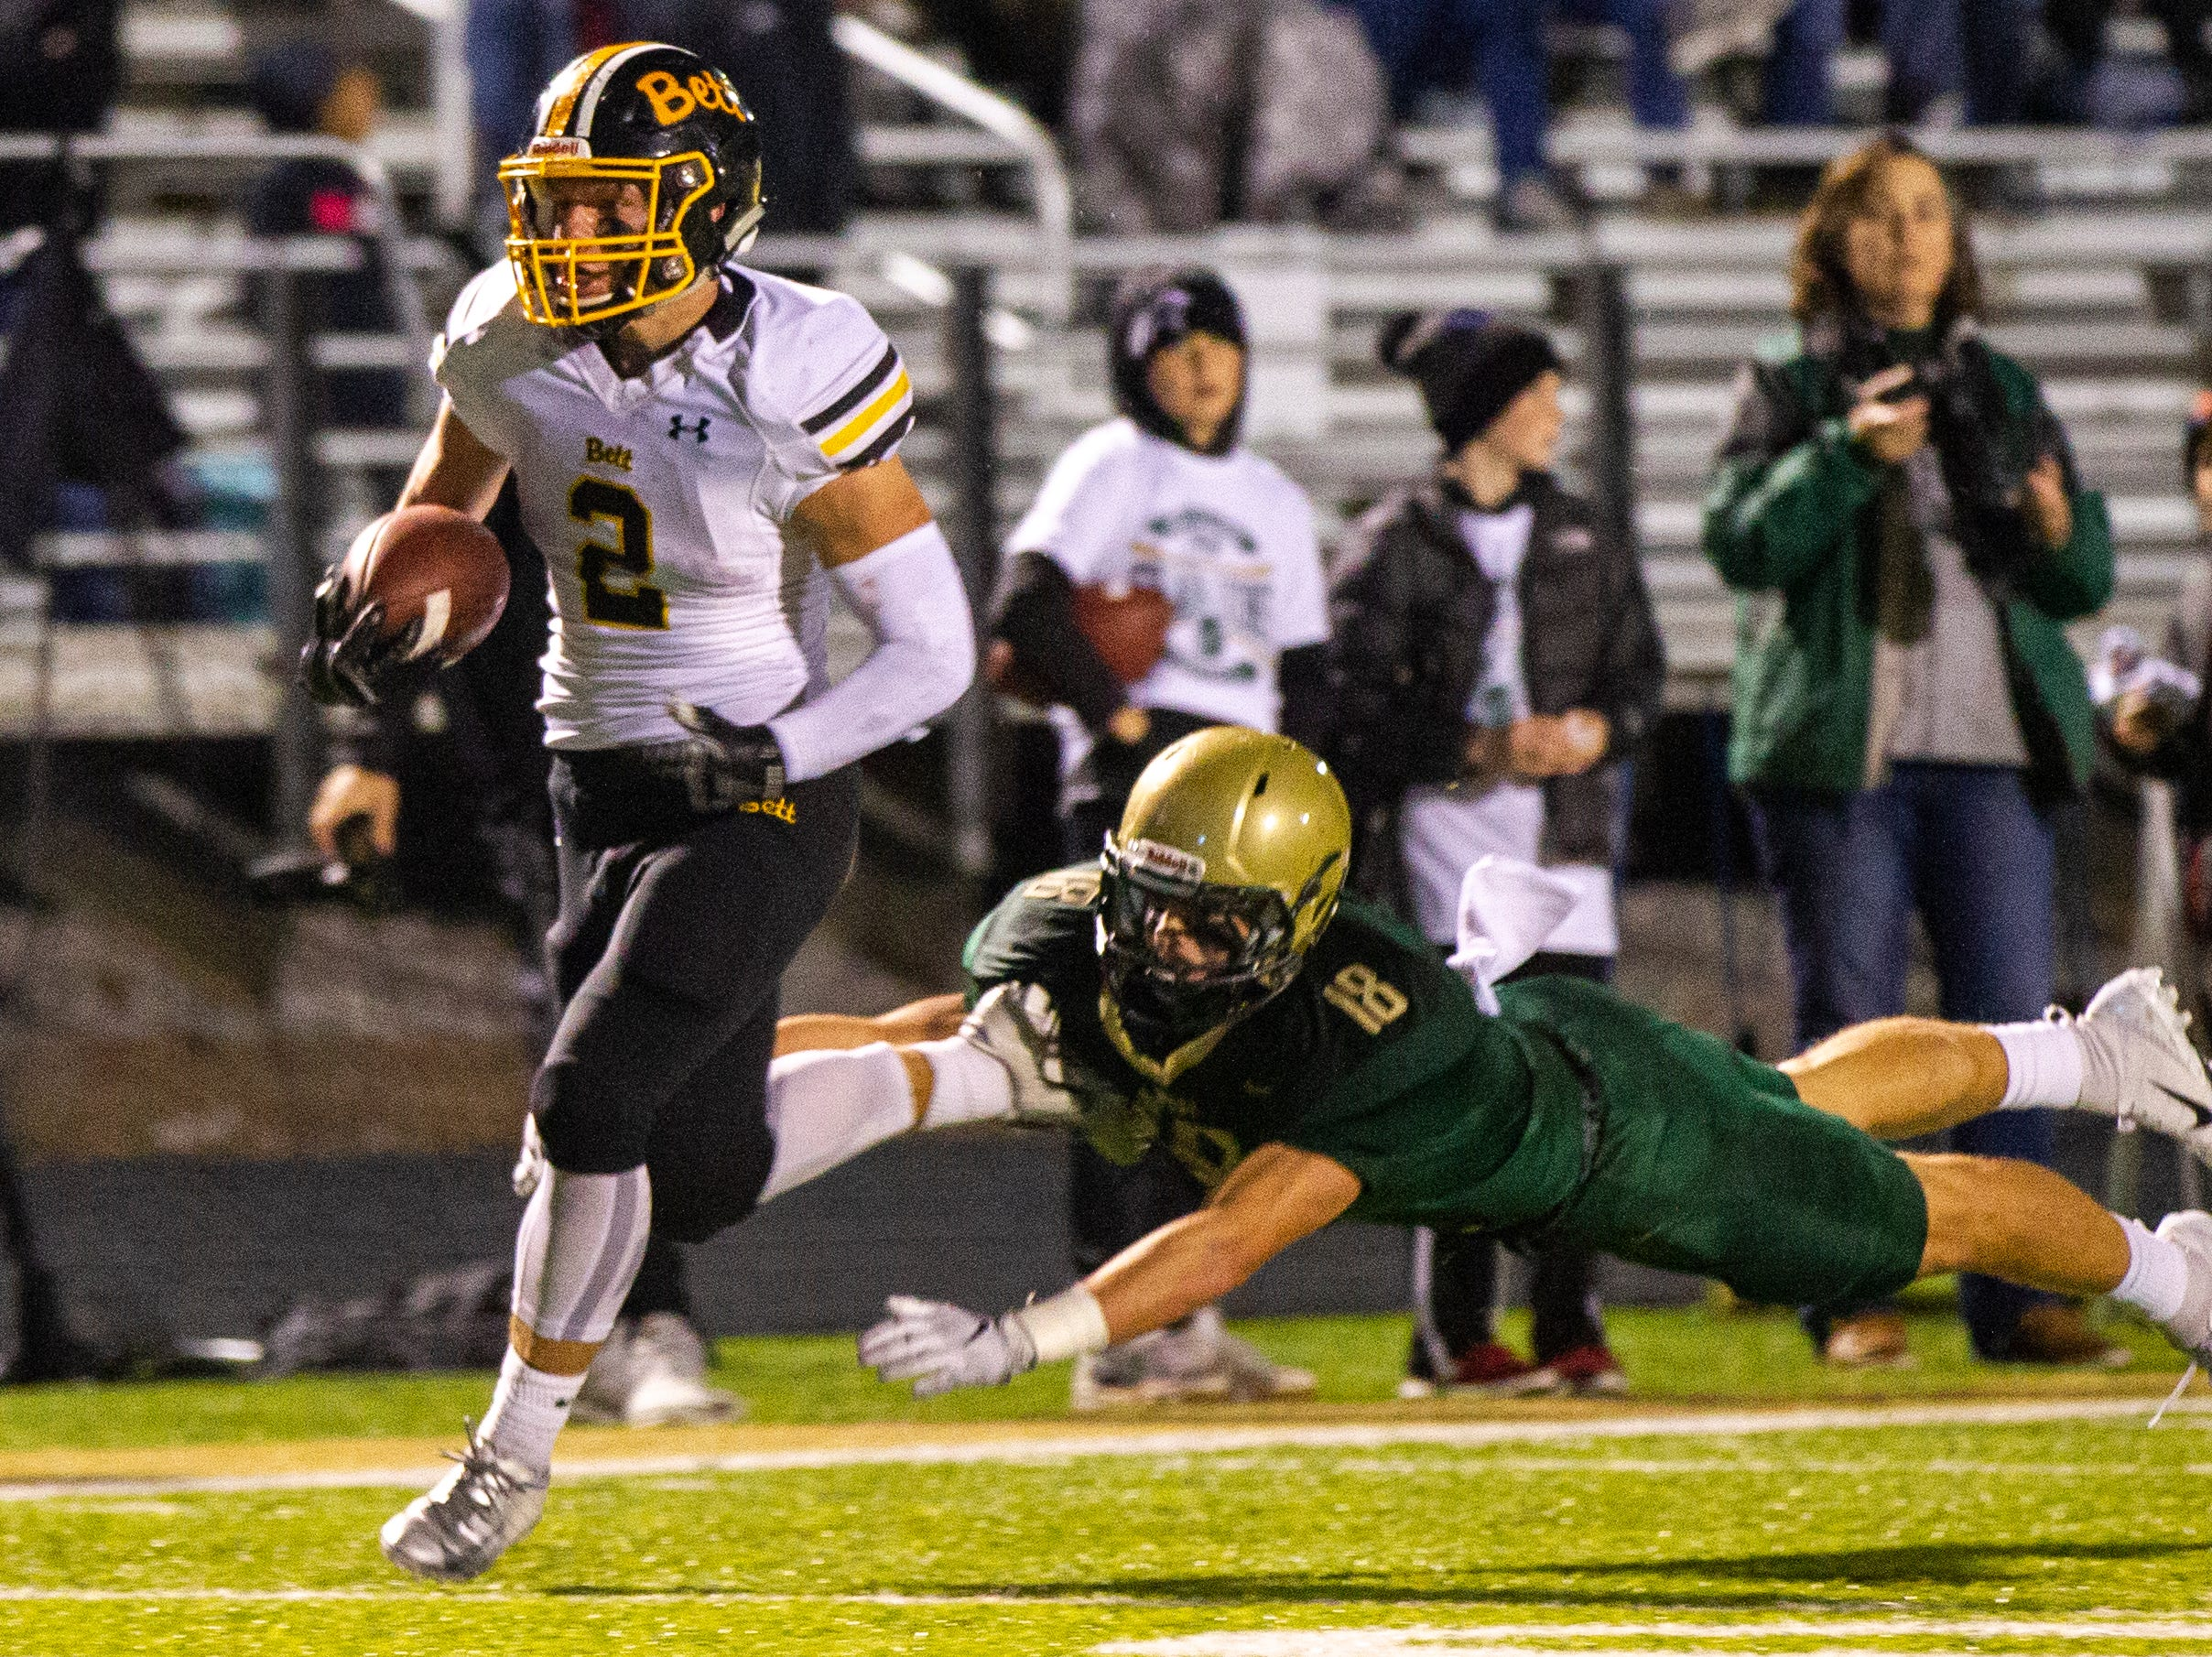 Bettendorf's Austin Kalar (2) gets tackled by Iowa City West's Cole Mabry (18) during a Class 4A quarterfinal football game on Friday, Nov. 2, 2018, at Trojan Field in Iowa City.